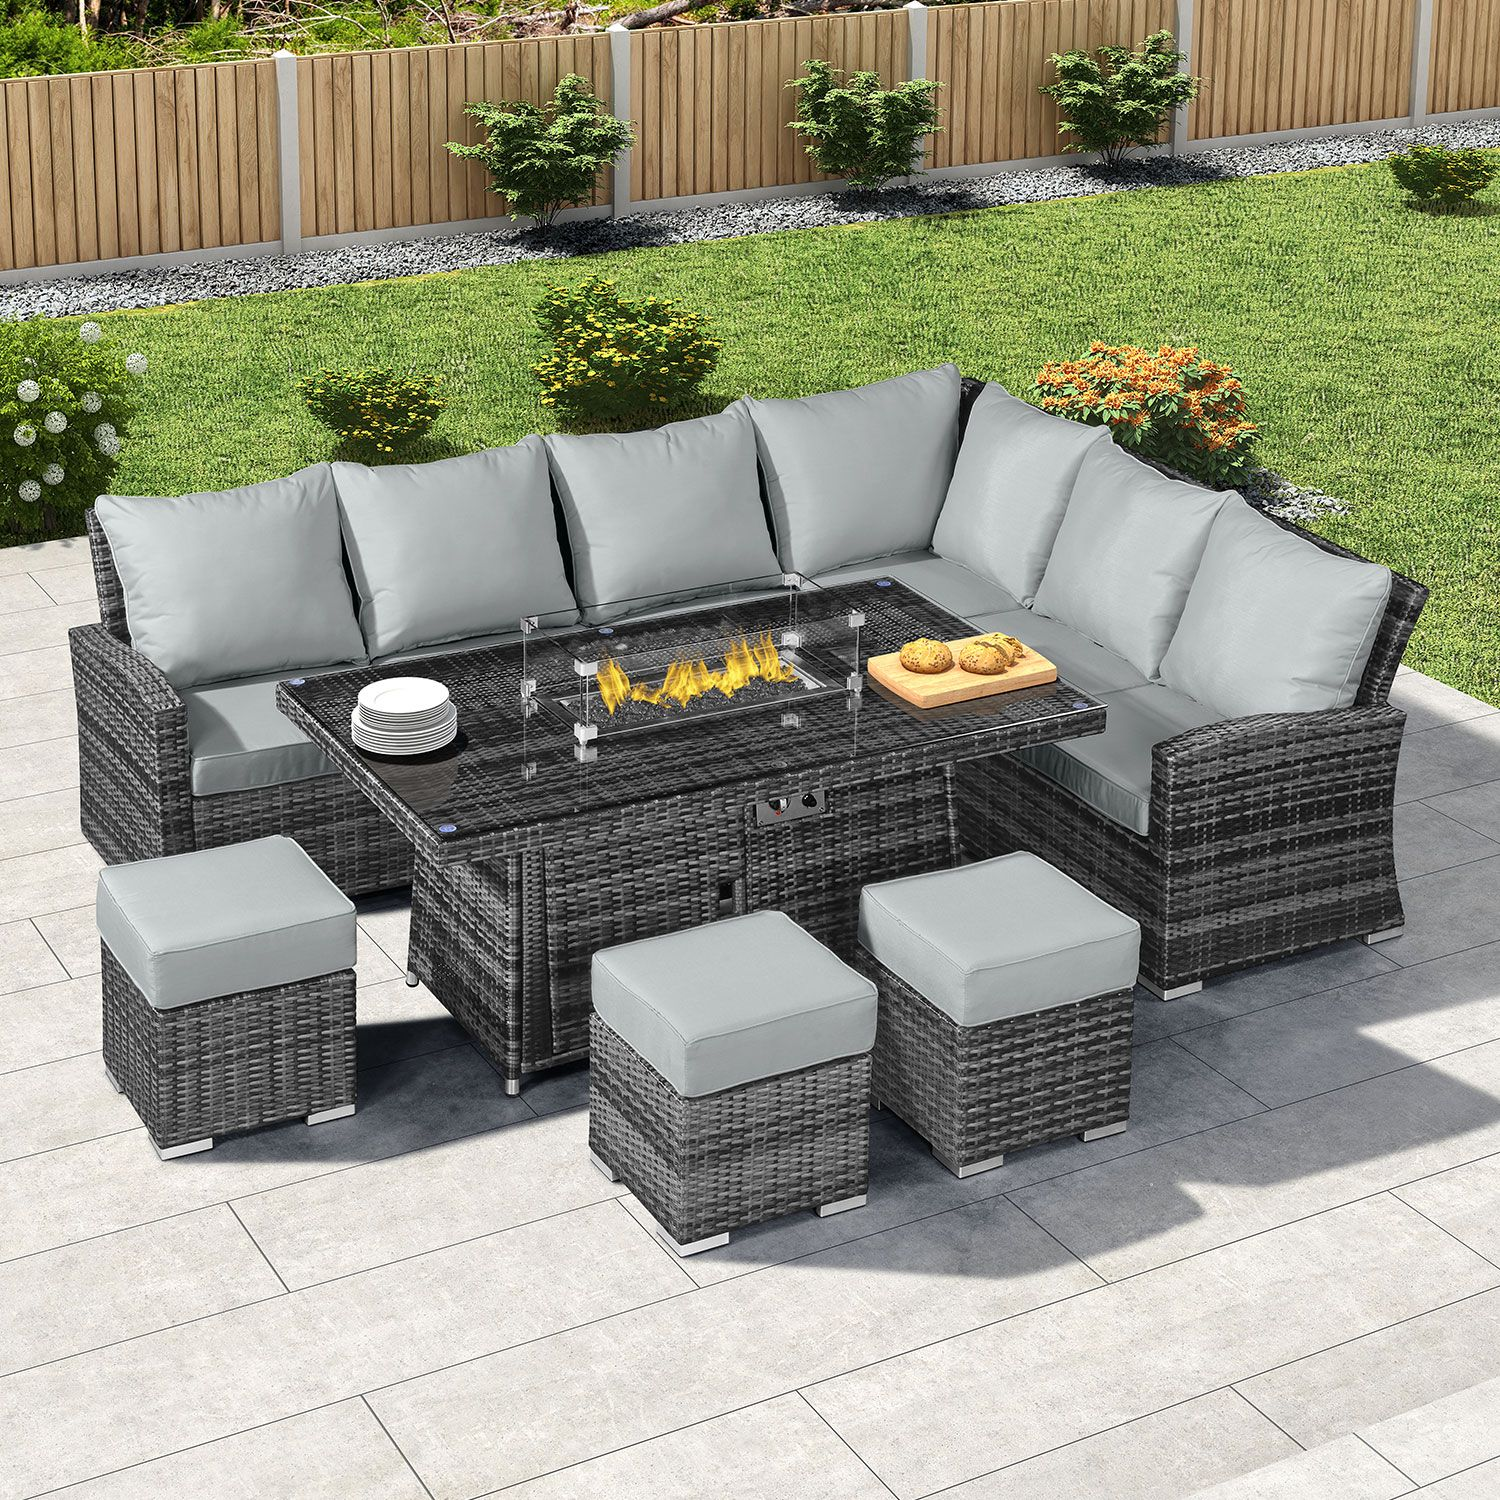 Cambridge Right Hand Casual Dining Corner Sofa Set With Firepit Table In 2020 Fire Pit Table Corner Dining Set Corner Sofa Set